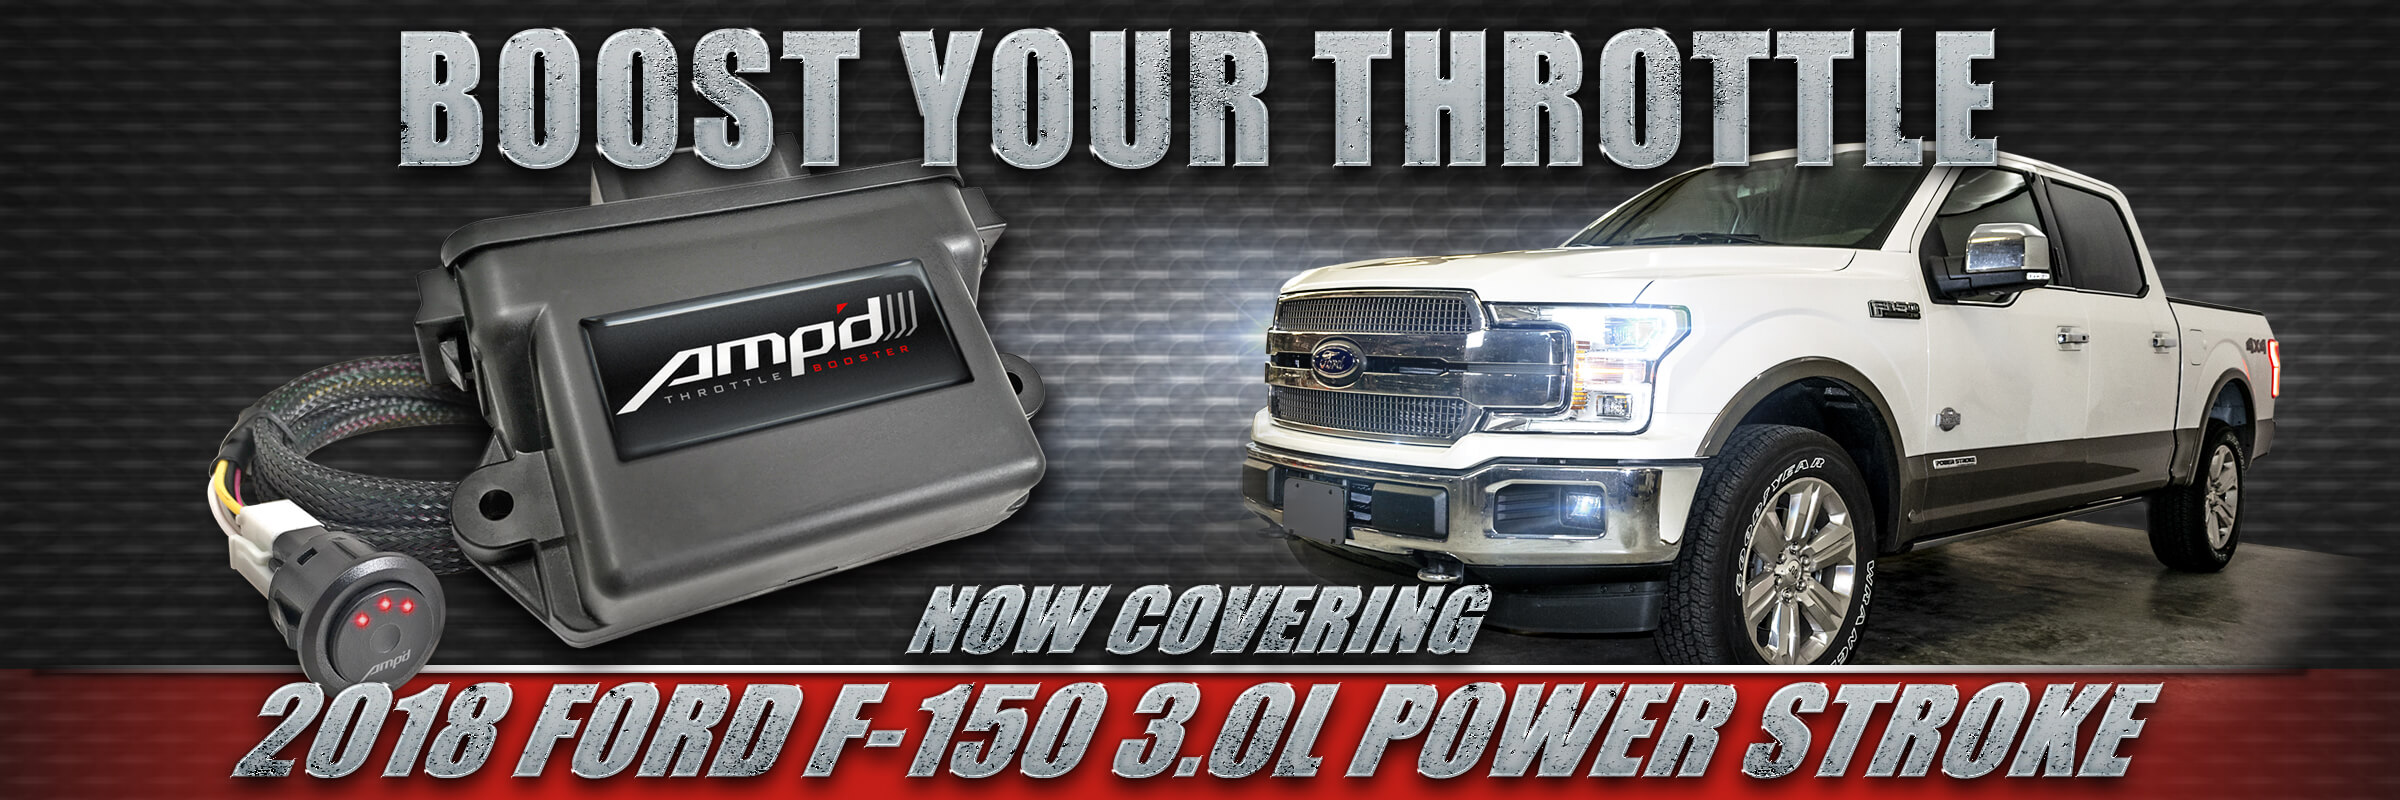 2018 ford f 150 3 0l power stoke diesel now supported by ampd throttle booster